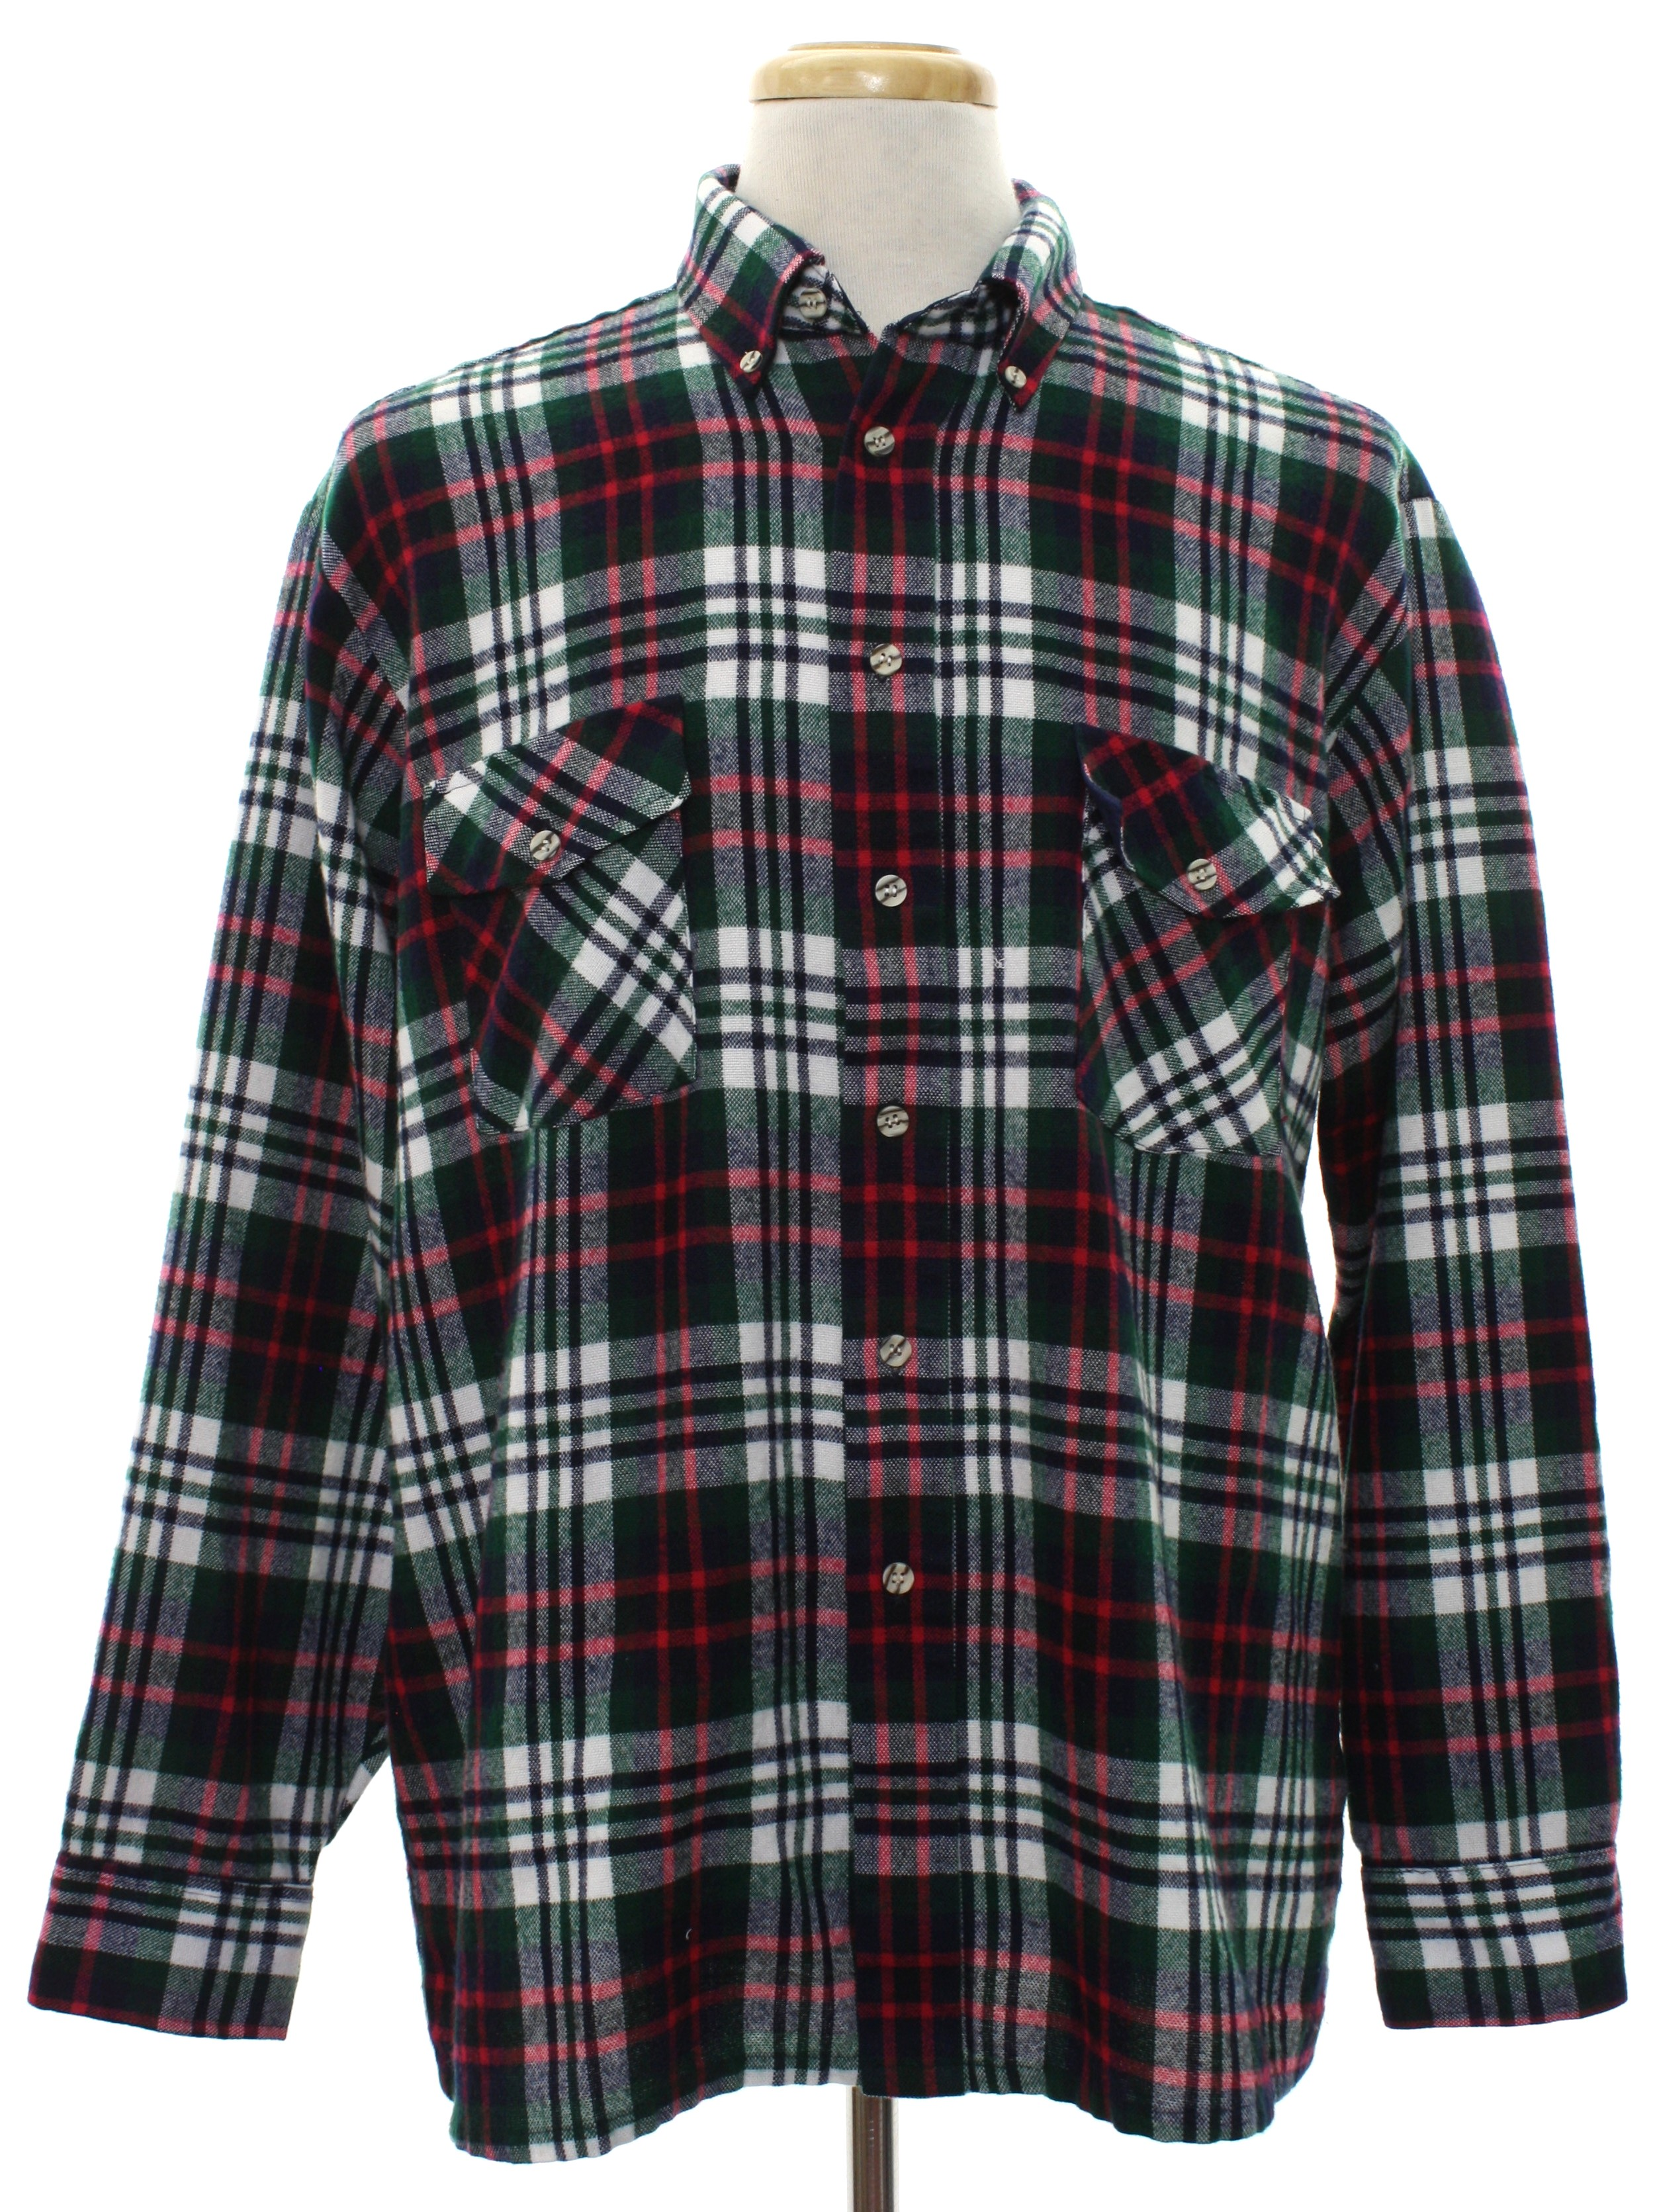 Retro 80s shirt winterweights by van heusen 80s for Navy blue and red flannel shirt